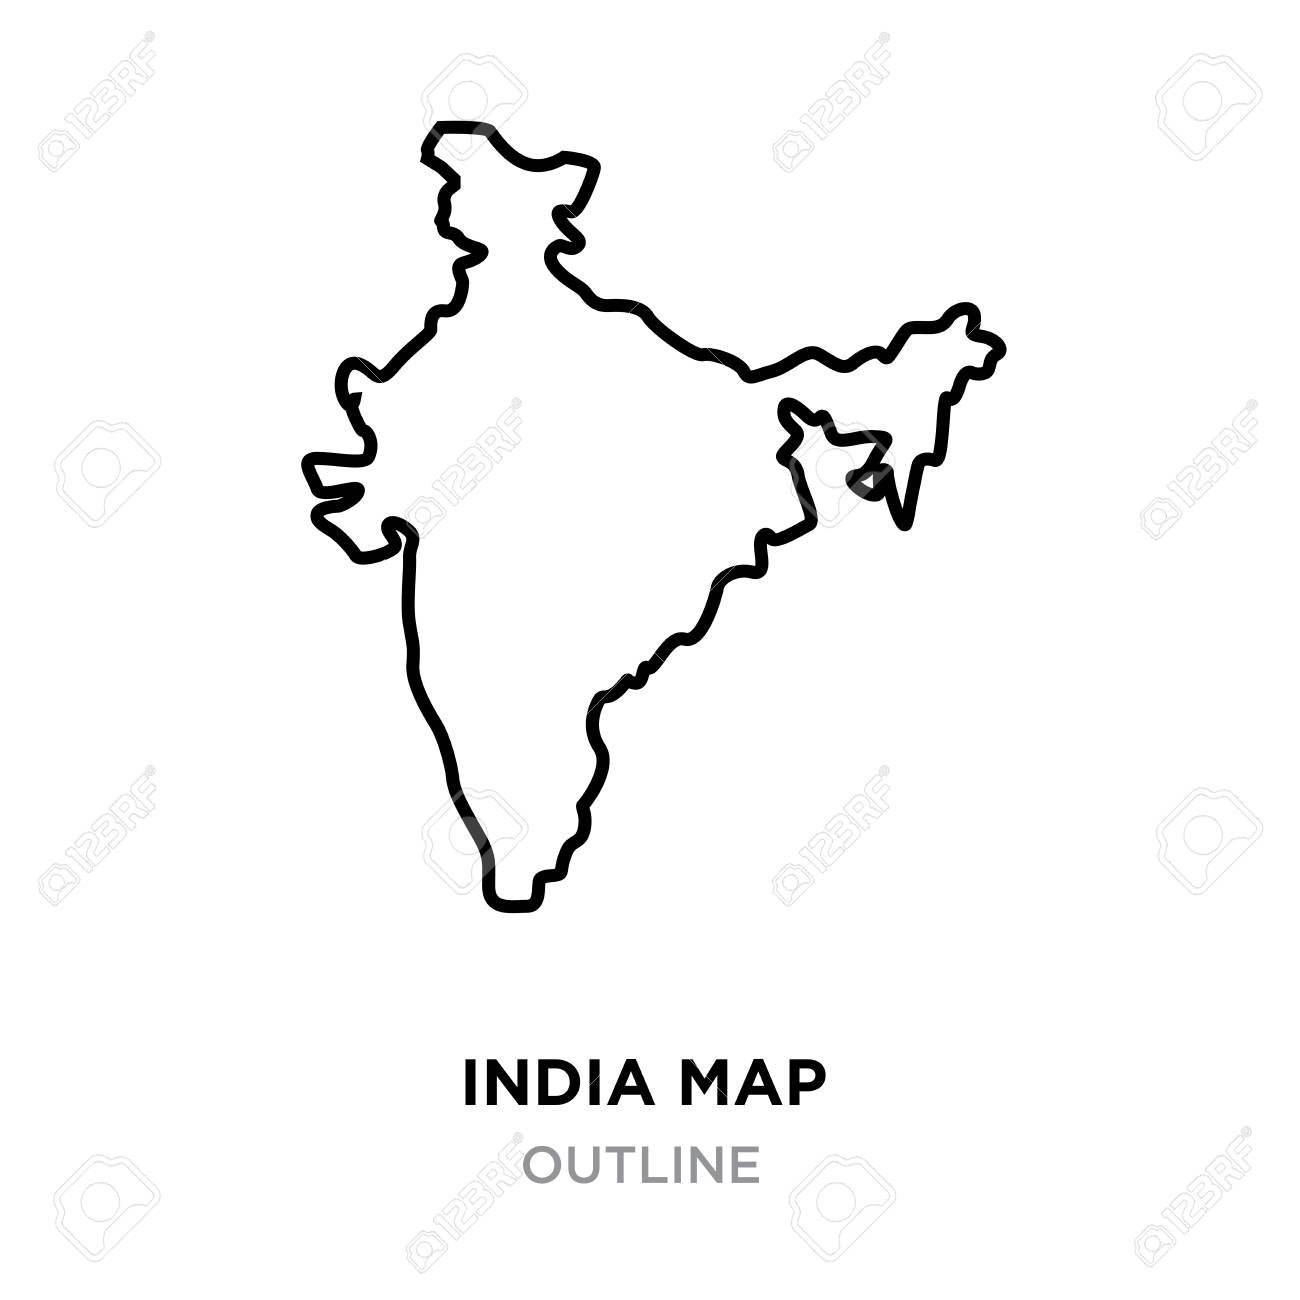 An Indian map outline on white background, vector illustration on temperature map, indian food, indian monsoon, indian national animal, indian jobs, map builder, indian art, central asia map, indian film, indian shop, indian paper, map drive, indian symbols, normal maps, indian tribes, indian clothing, indian education, indian hotels, live map, indian car, indian compass, political map of the world, indian flag, sky map, indian history, indian restaurants, latin america map, indian city, indian currency,